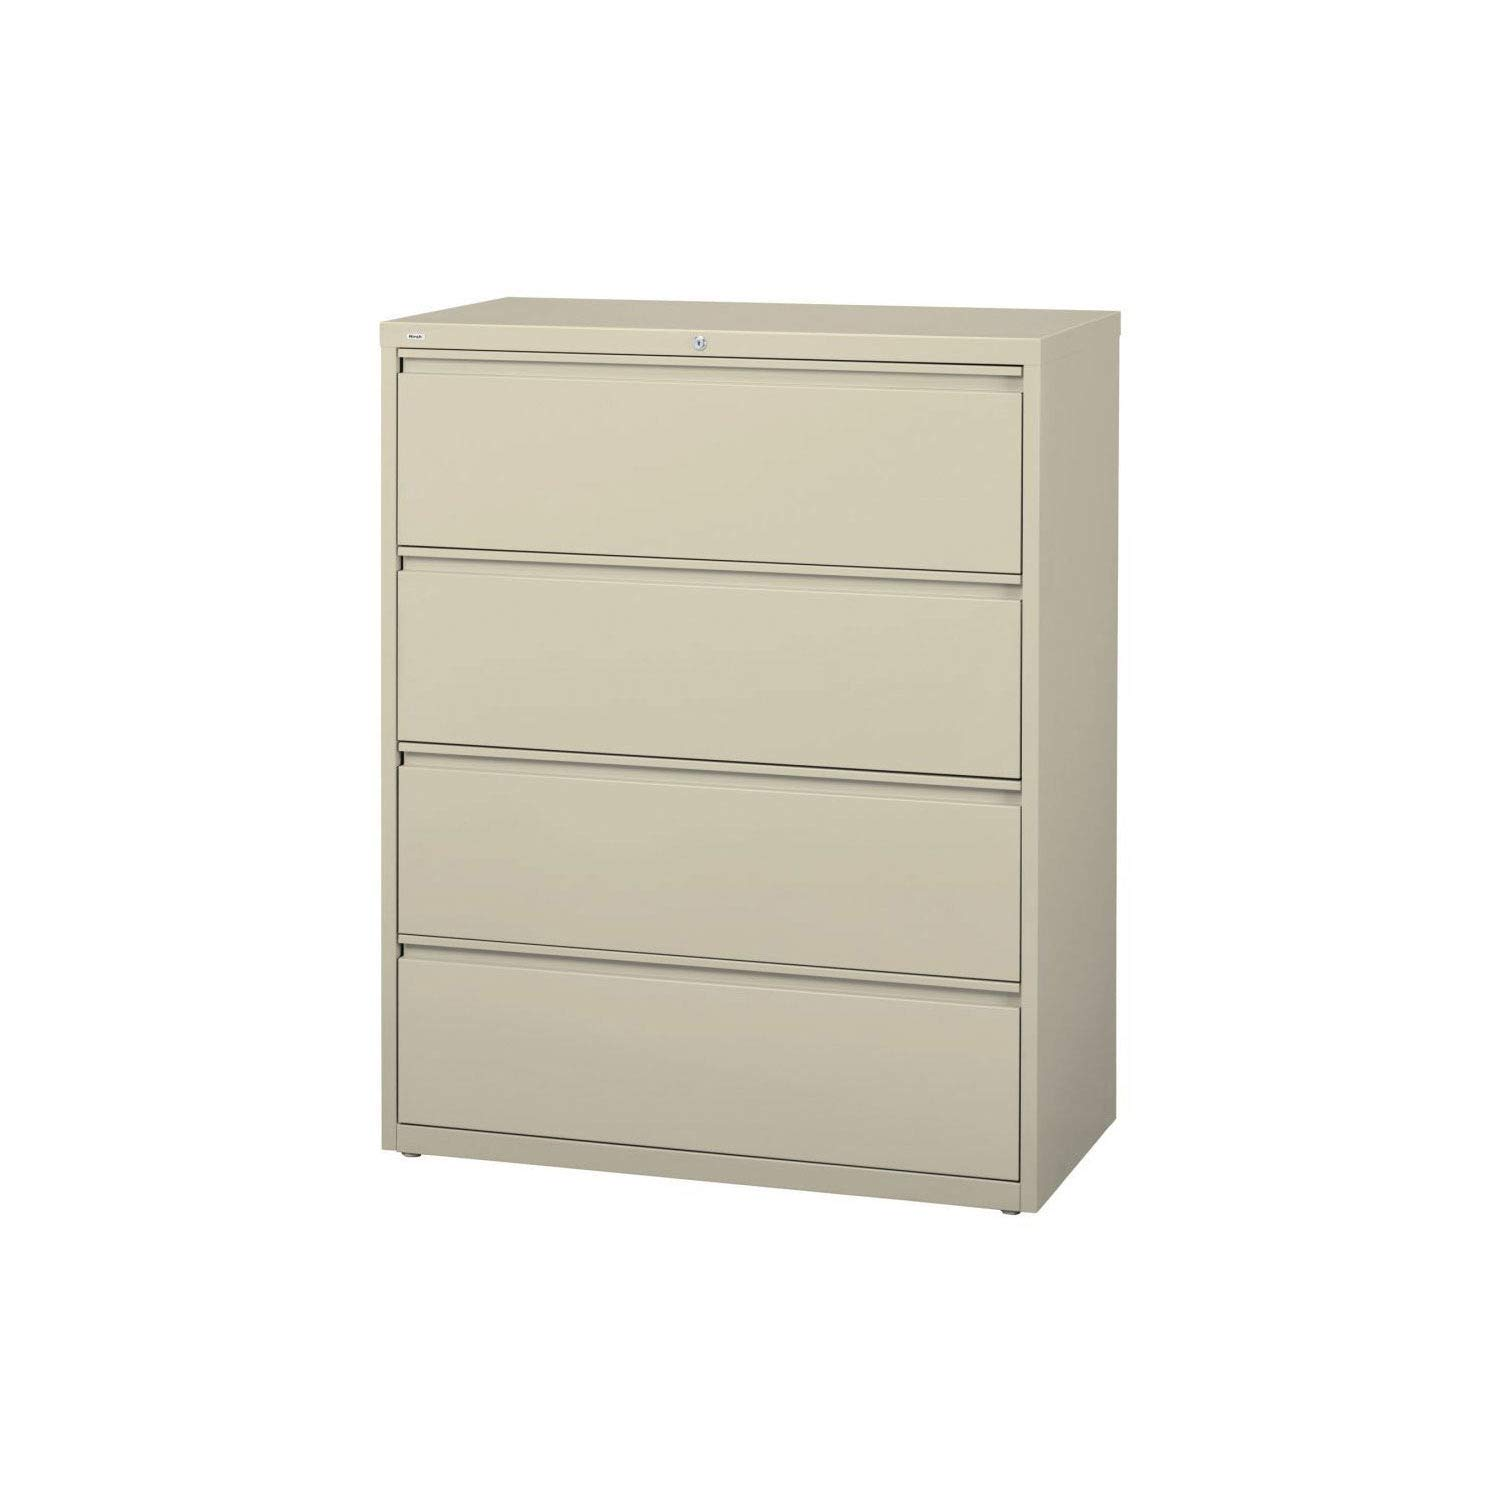 B001JSSPTA Lorell 4-Drawer Lateral File, 36 by 18-5/8 by 52-1/2-Inch, Putty 51VCr8ICZTL._SL1500_